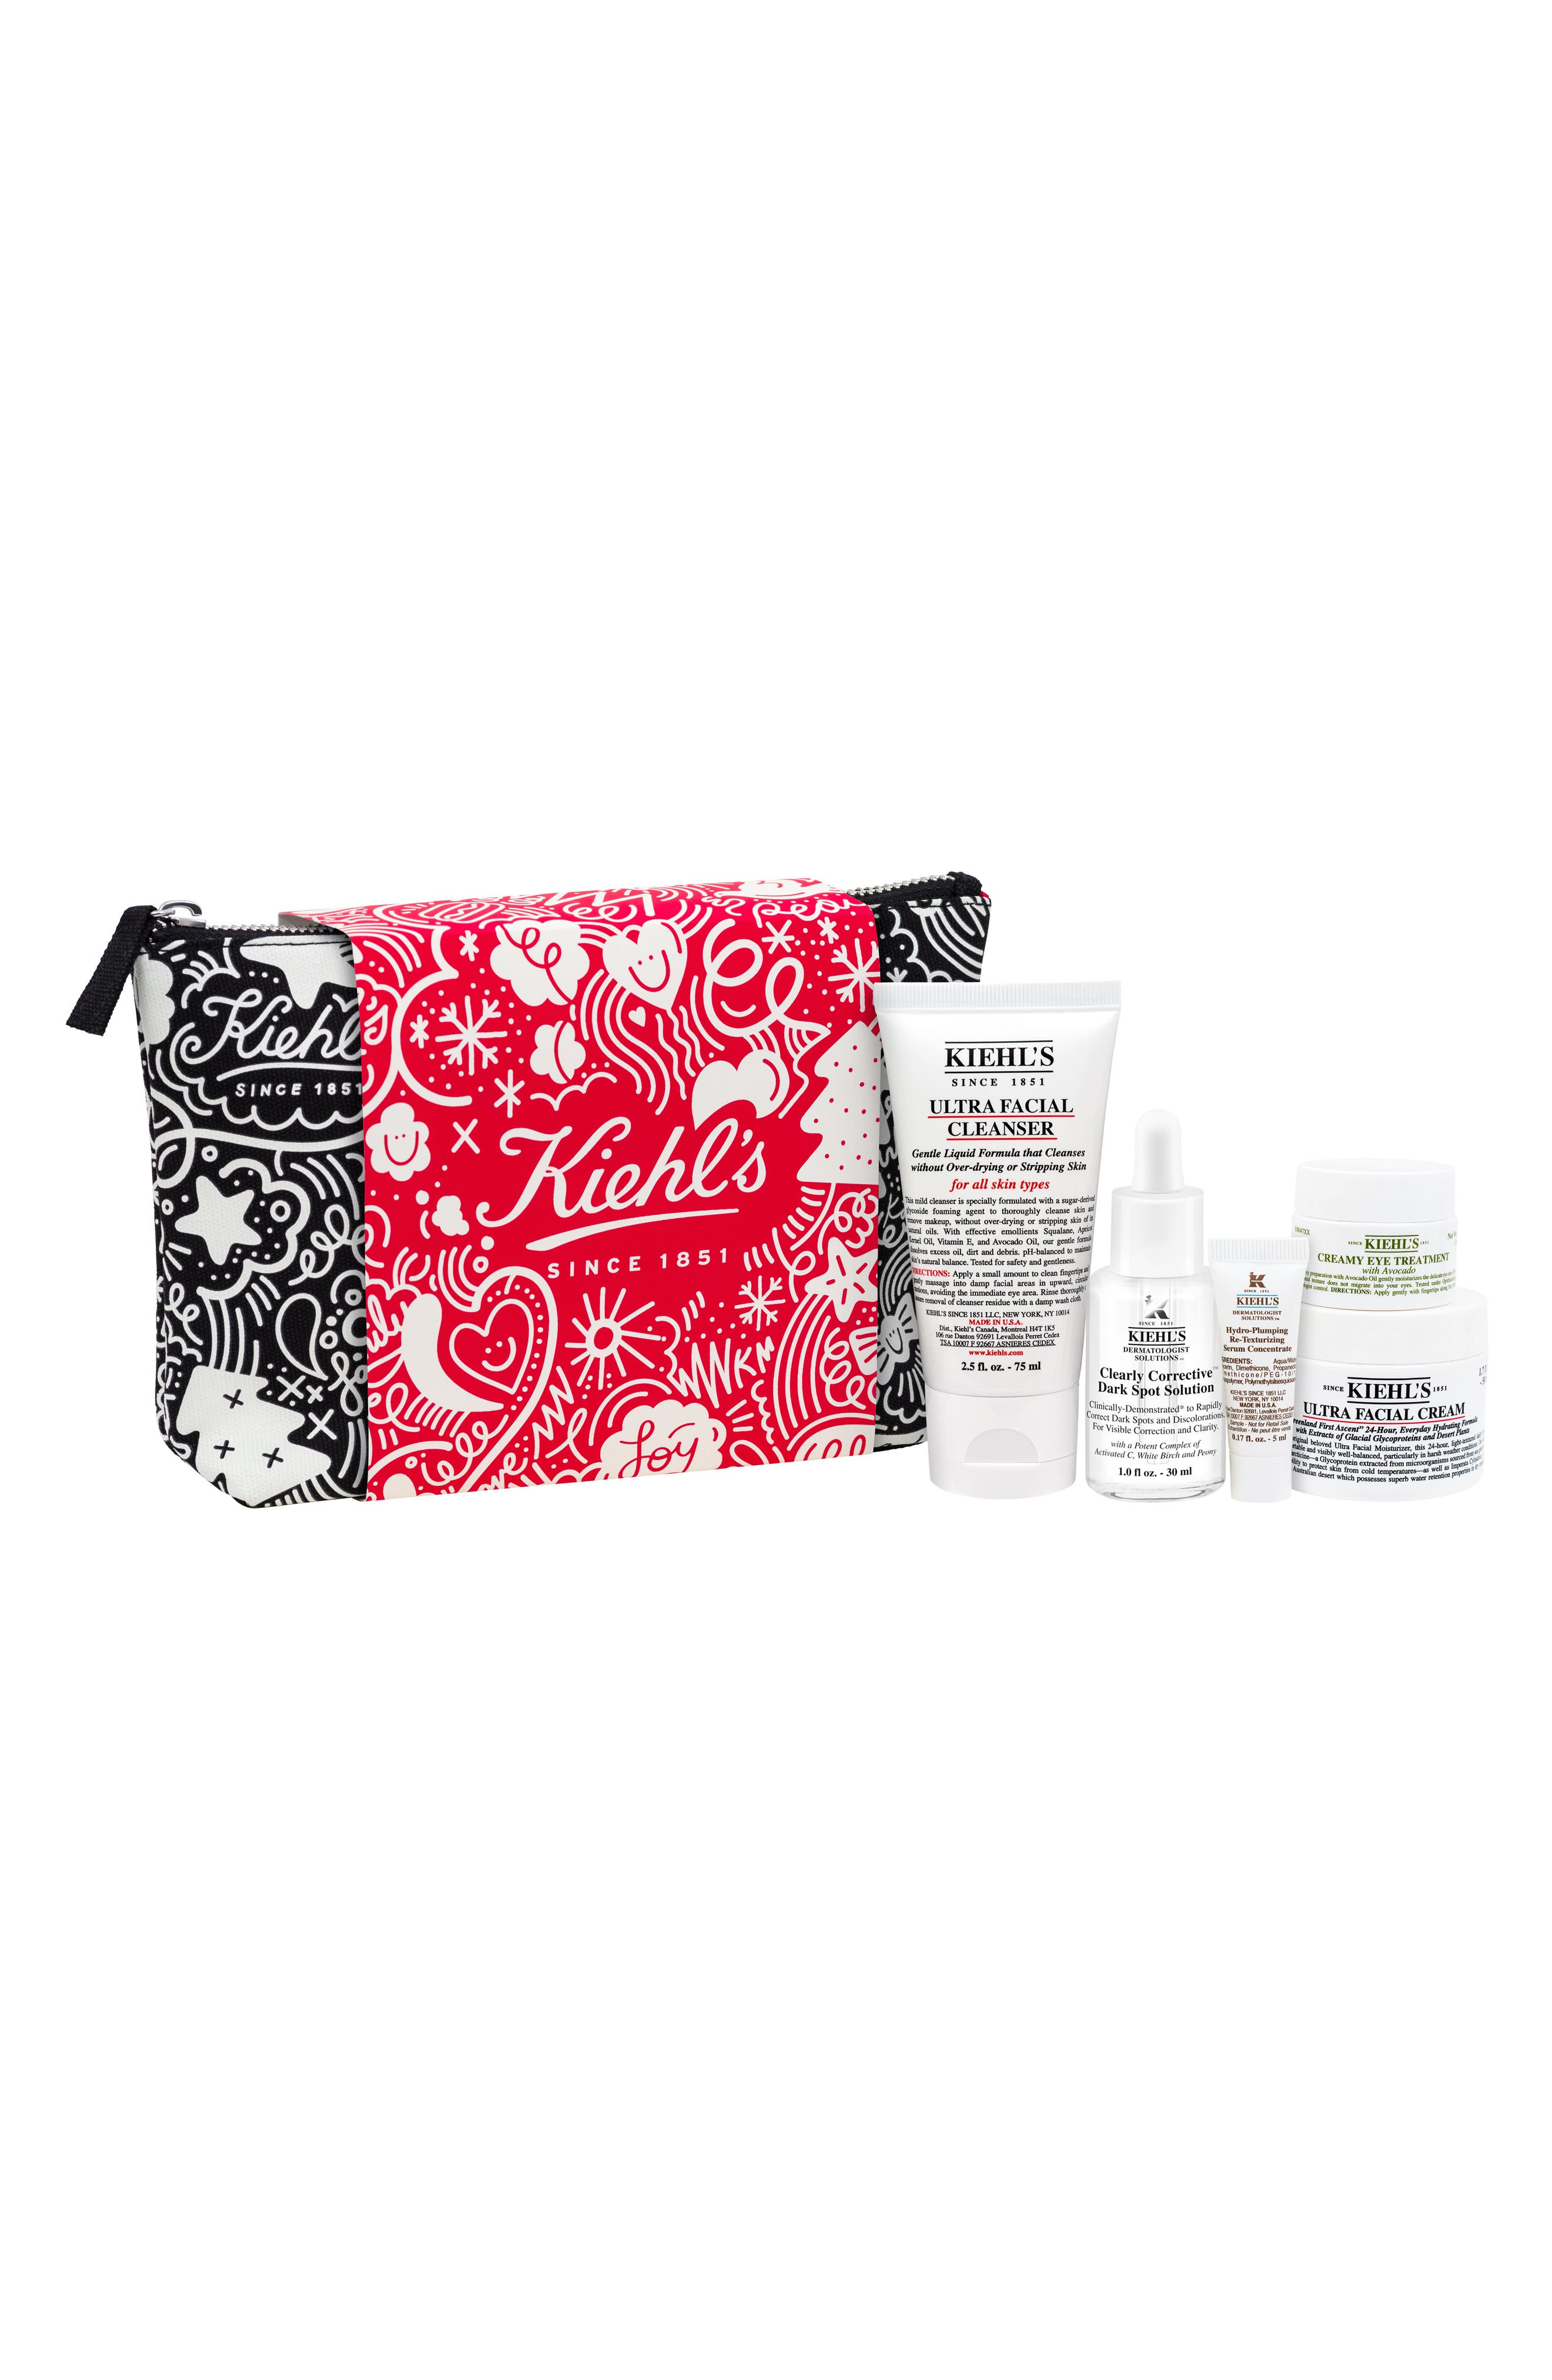 Main Image - Kiehl's Since 1851 Every Day Healthy Skin Set ($123 Value)